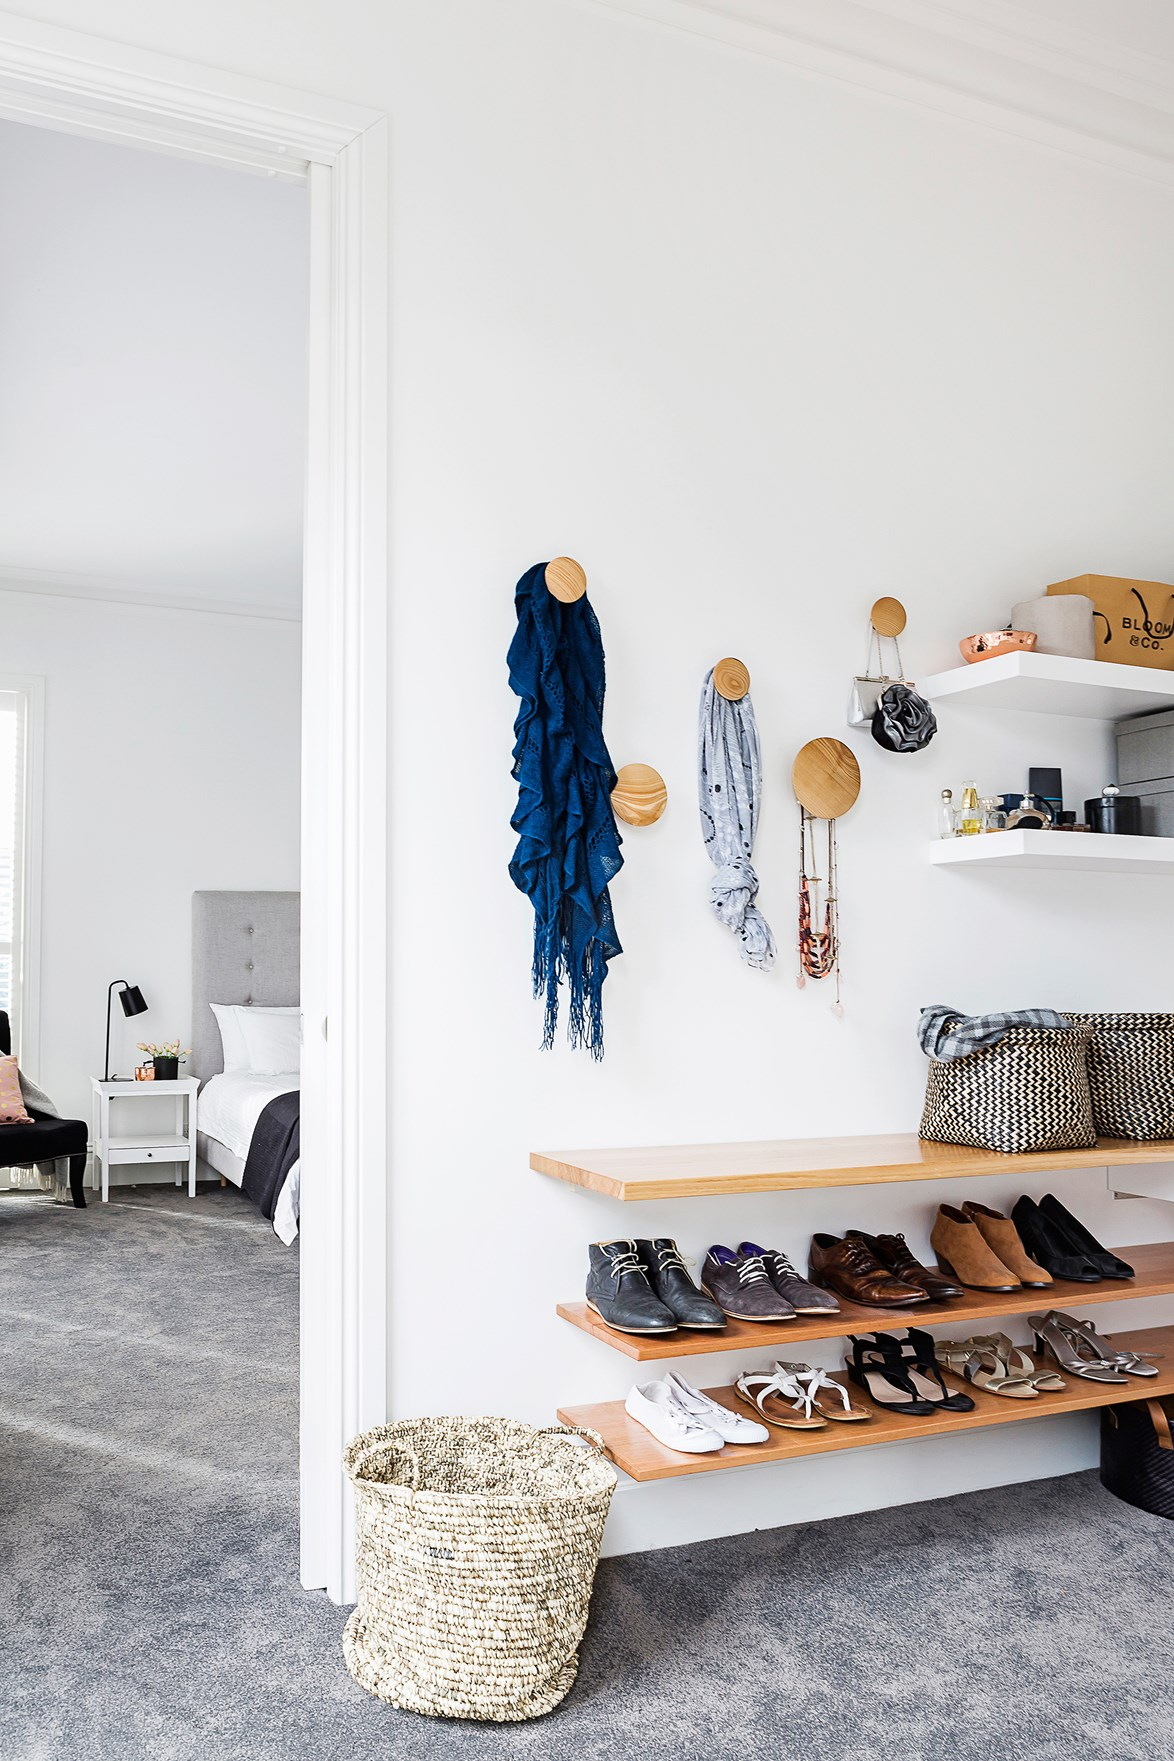 Wall hooks, mounted shelves and baskets are all fantastic space-saving storage solutions. Photo: Maree Homer / homes+